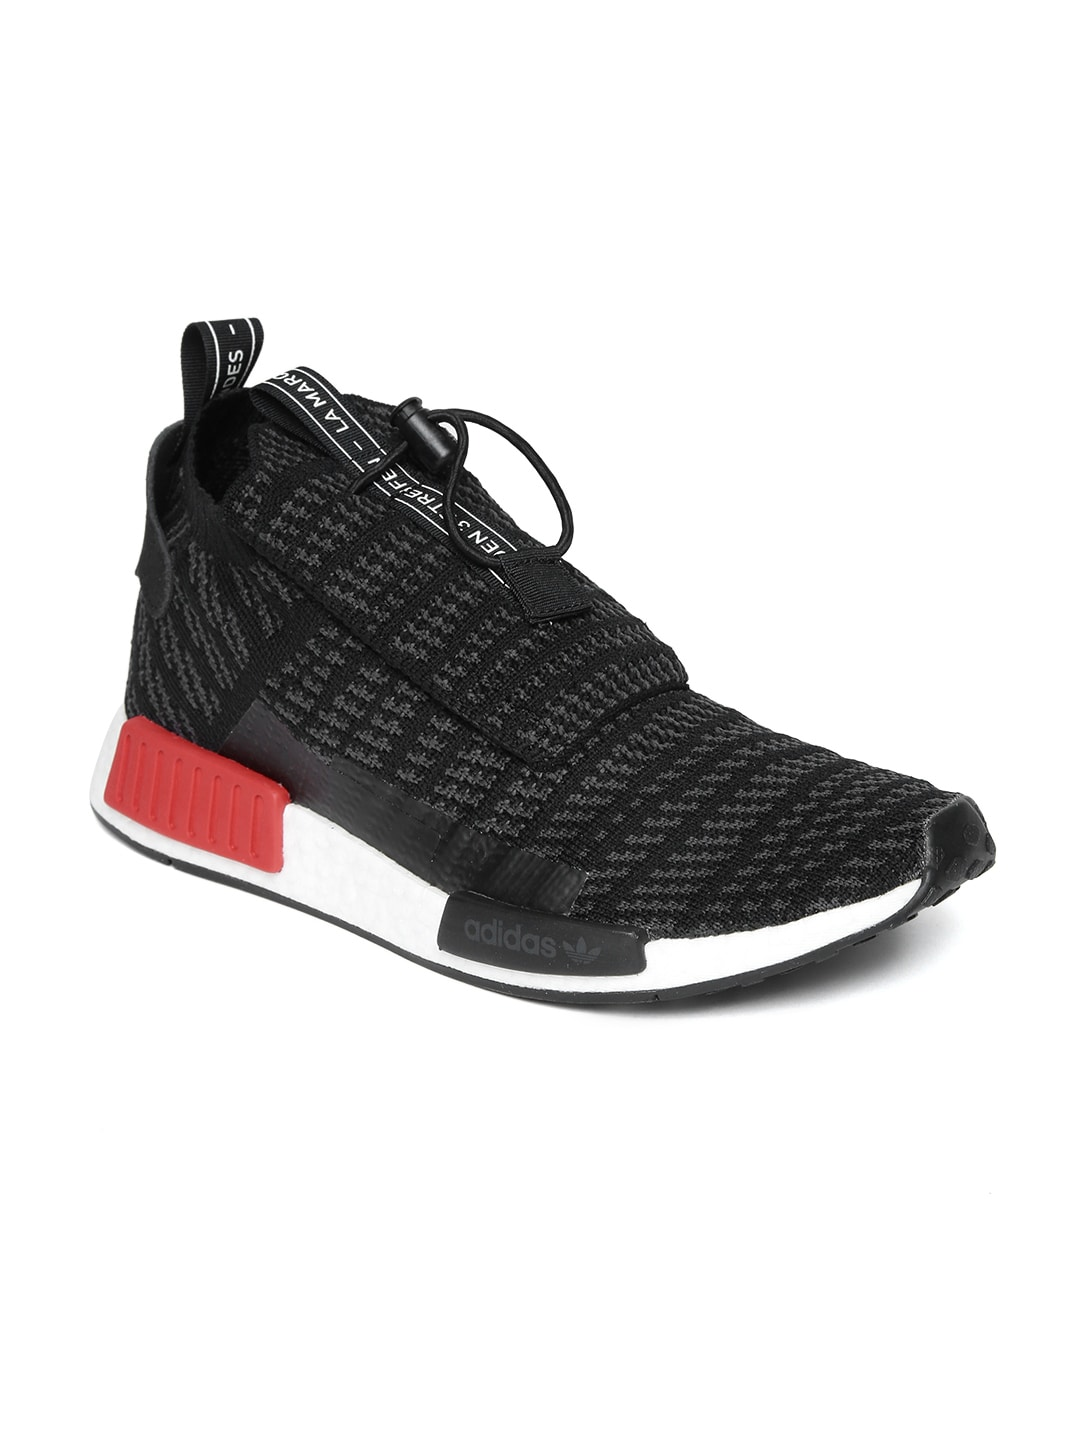 best service 5cdc6 4bb8f ... germany adidas shoes buy adidas shoes for men women online myntra 8f8d5  716f5